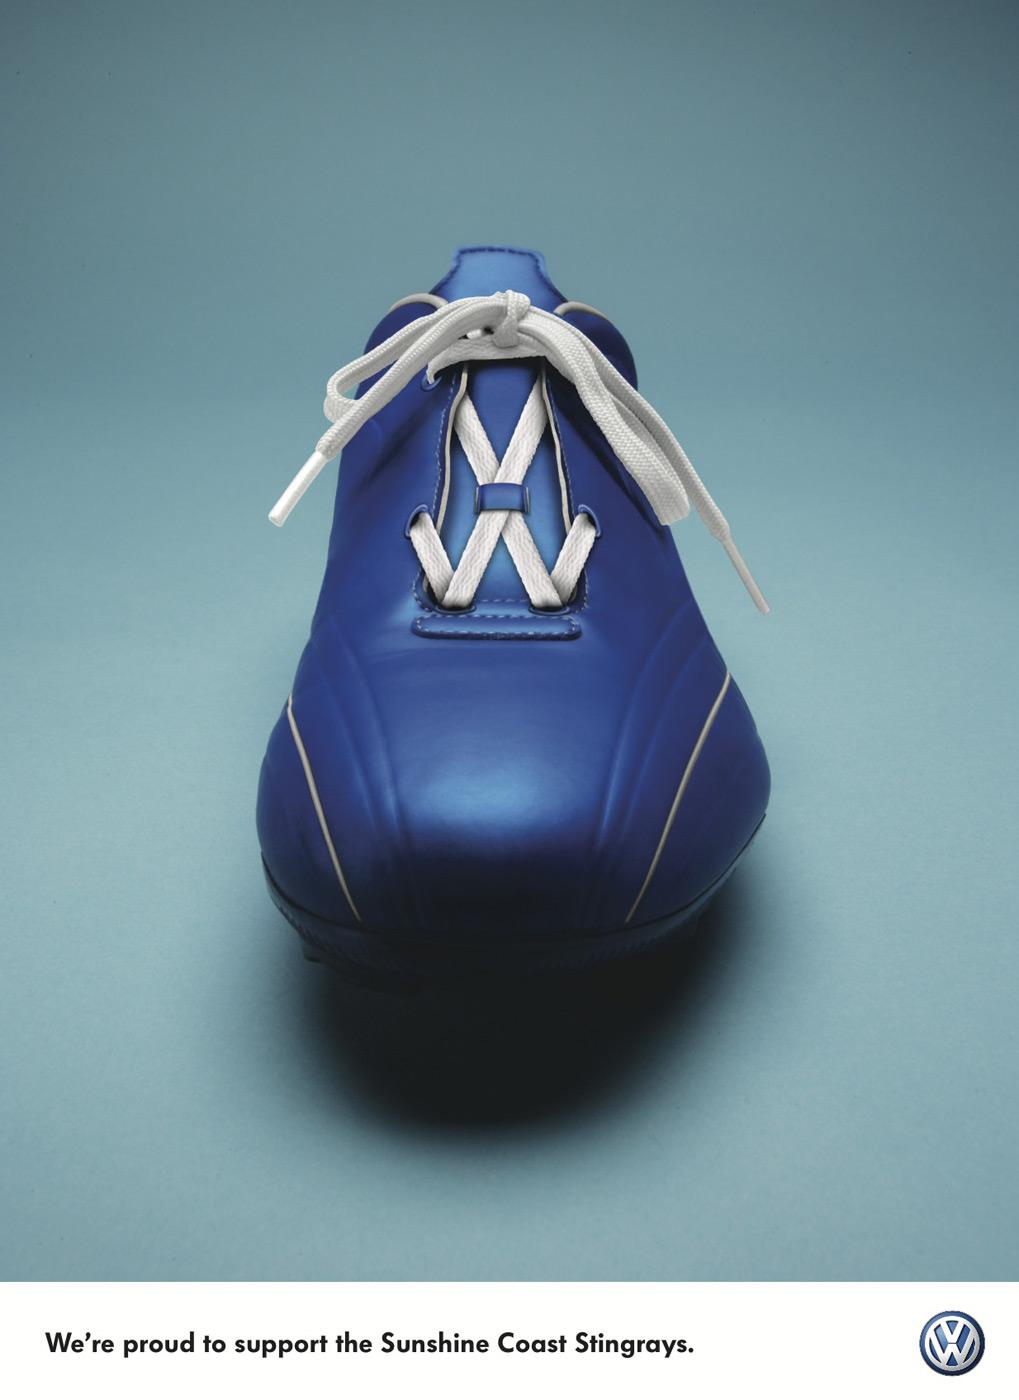 Creative Typography Ads - Volkswagen: Stingrays